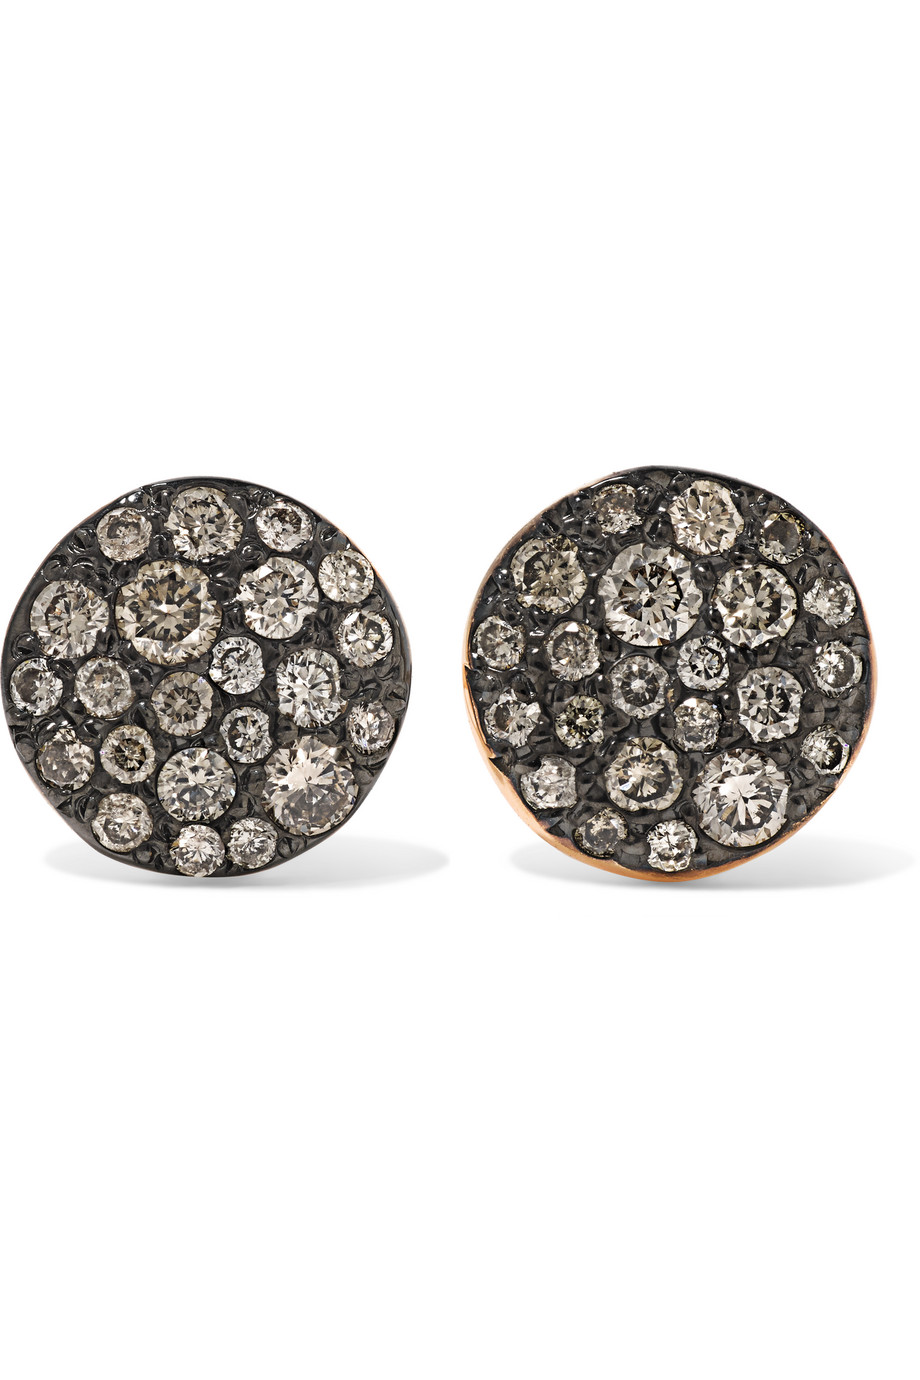 Sabbia 18-Karat Rose Gold Diamond Earrings, Rose Gold/Black, Women's